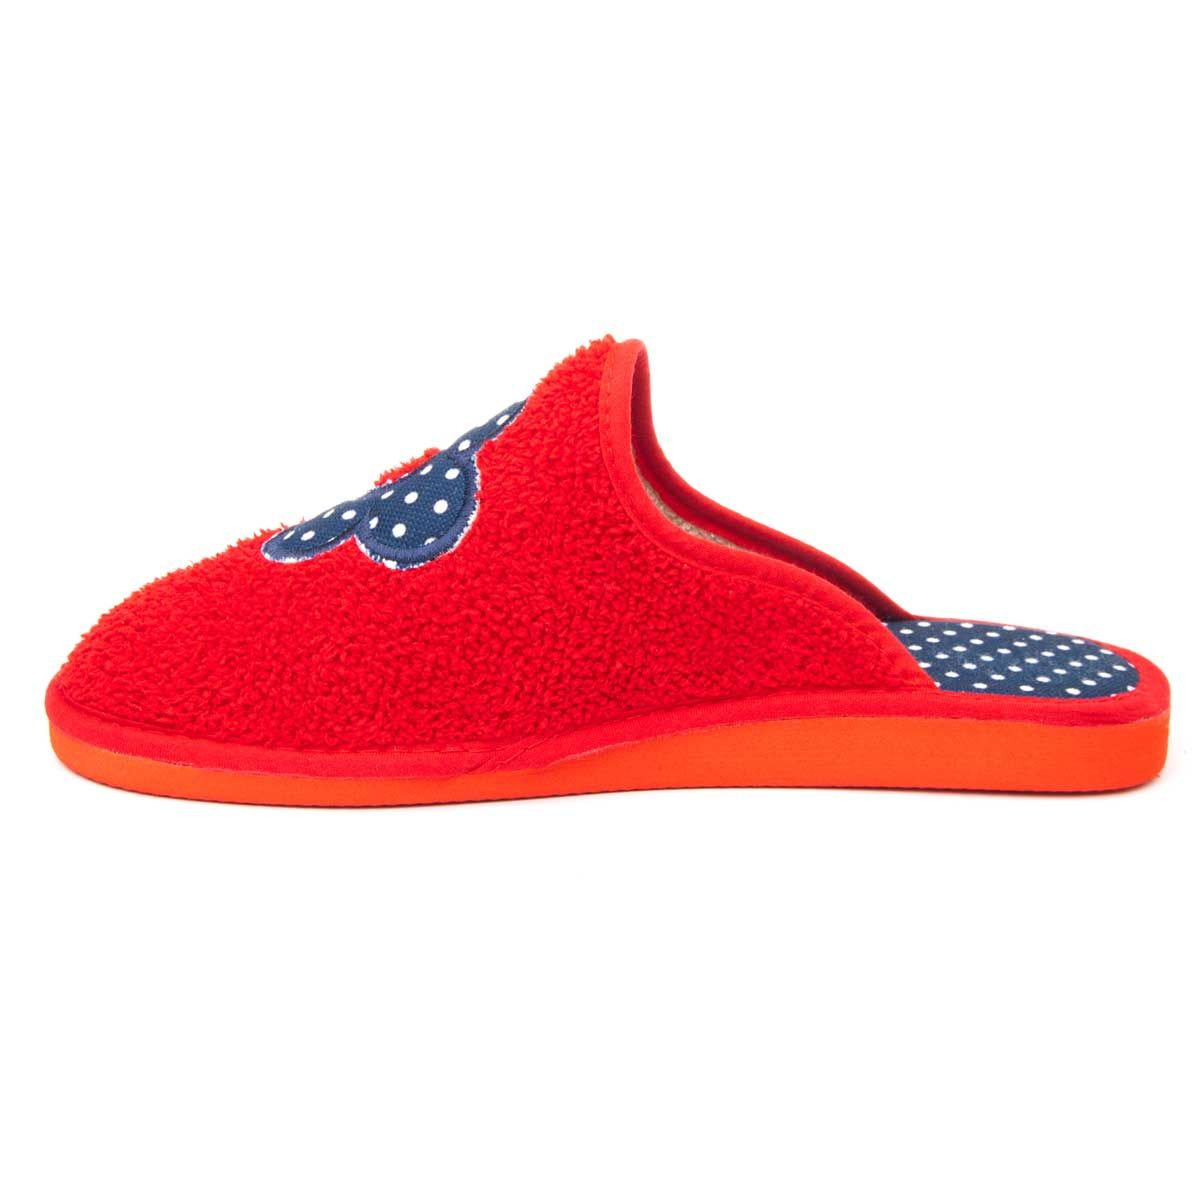 Northome Comfortable Slipper in Red